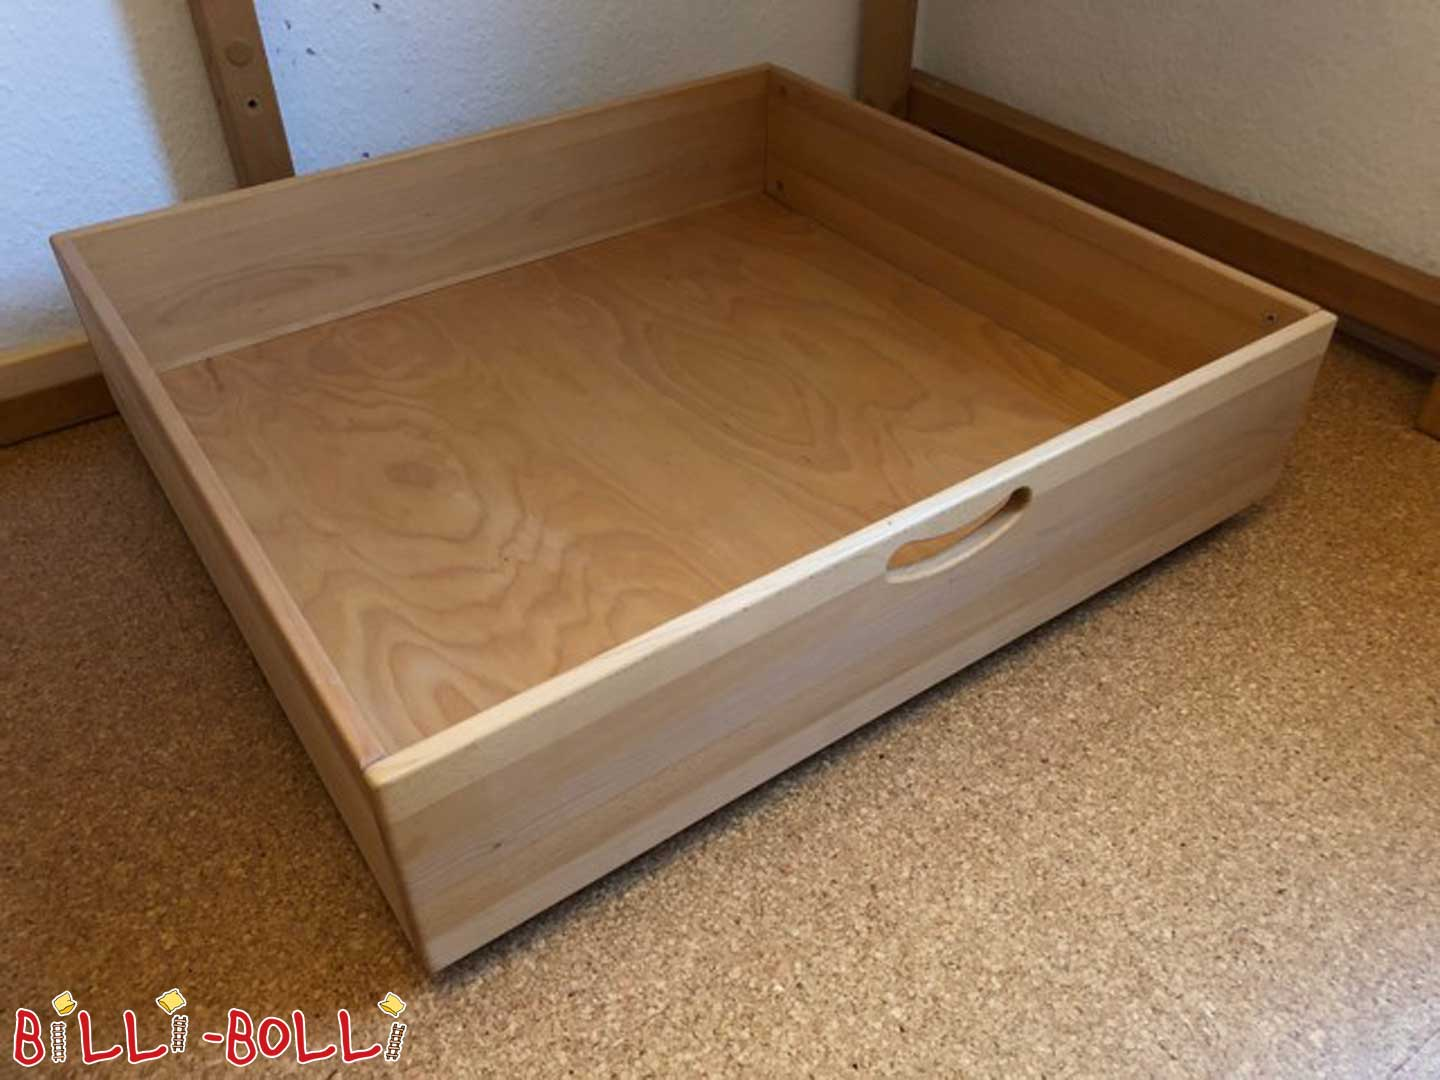 Bed boxes (second hand kids' furniture)